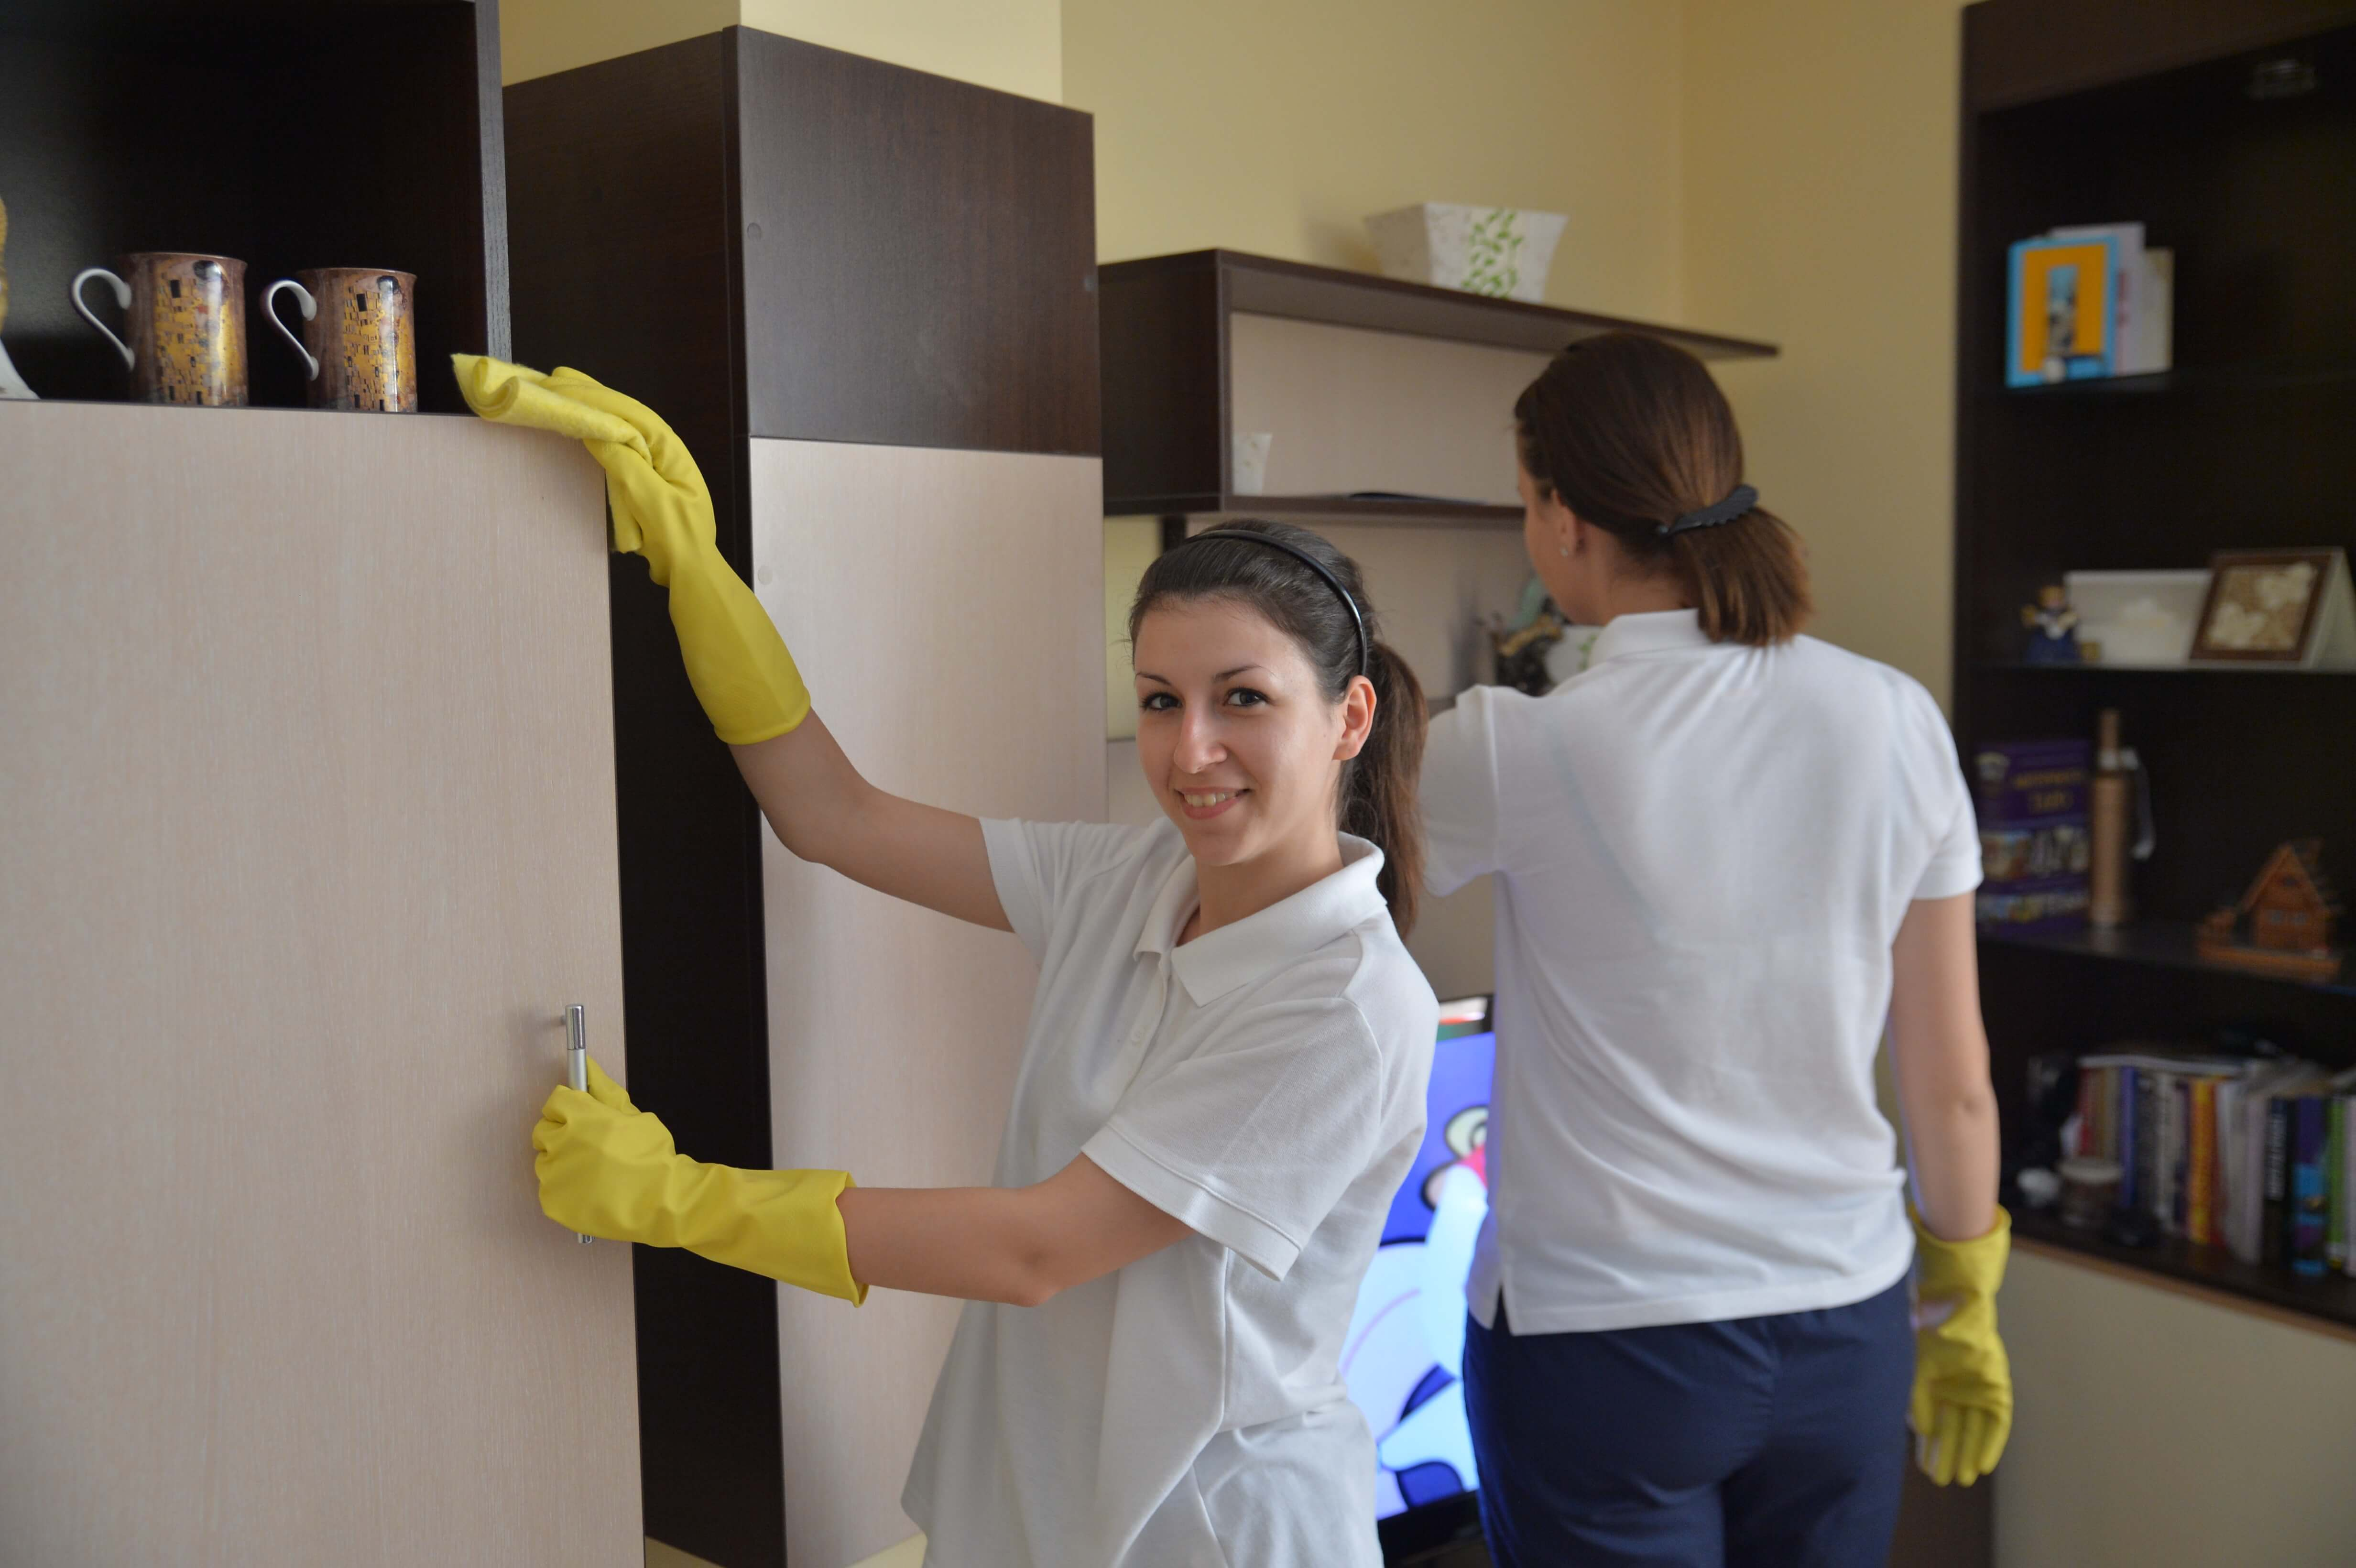 House-Cleaning-Service-Maid-Sailors-New-York-City_1 | Maid Sailors